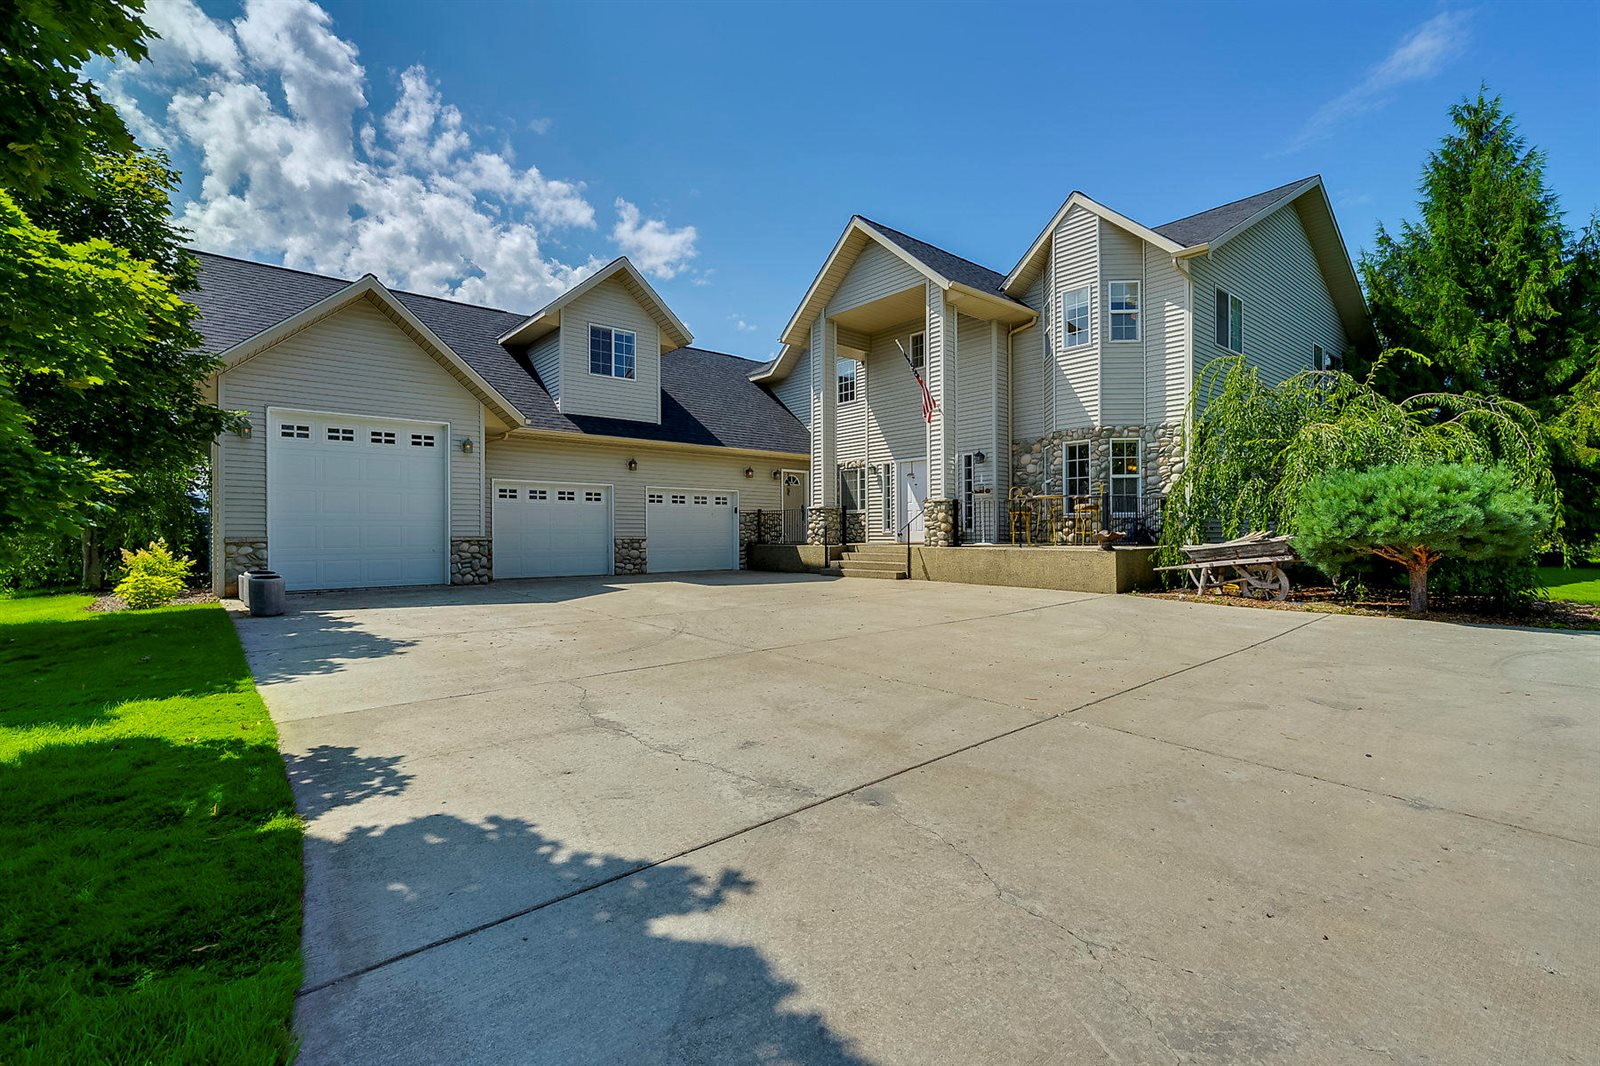 2161 North Reiswig Rd, Post Falls, ID 83854